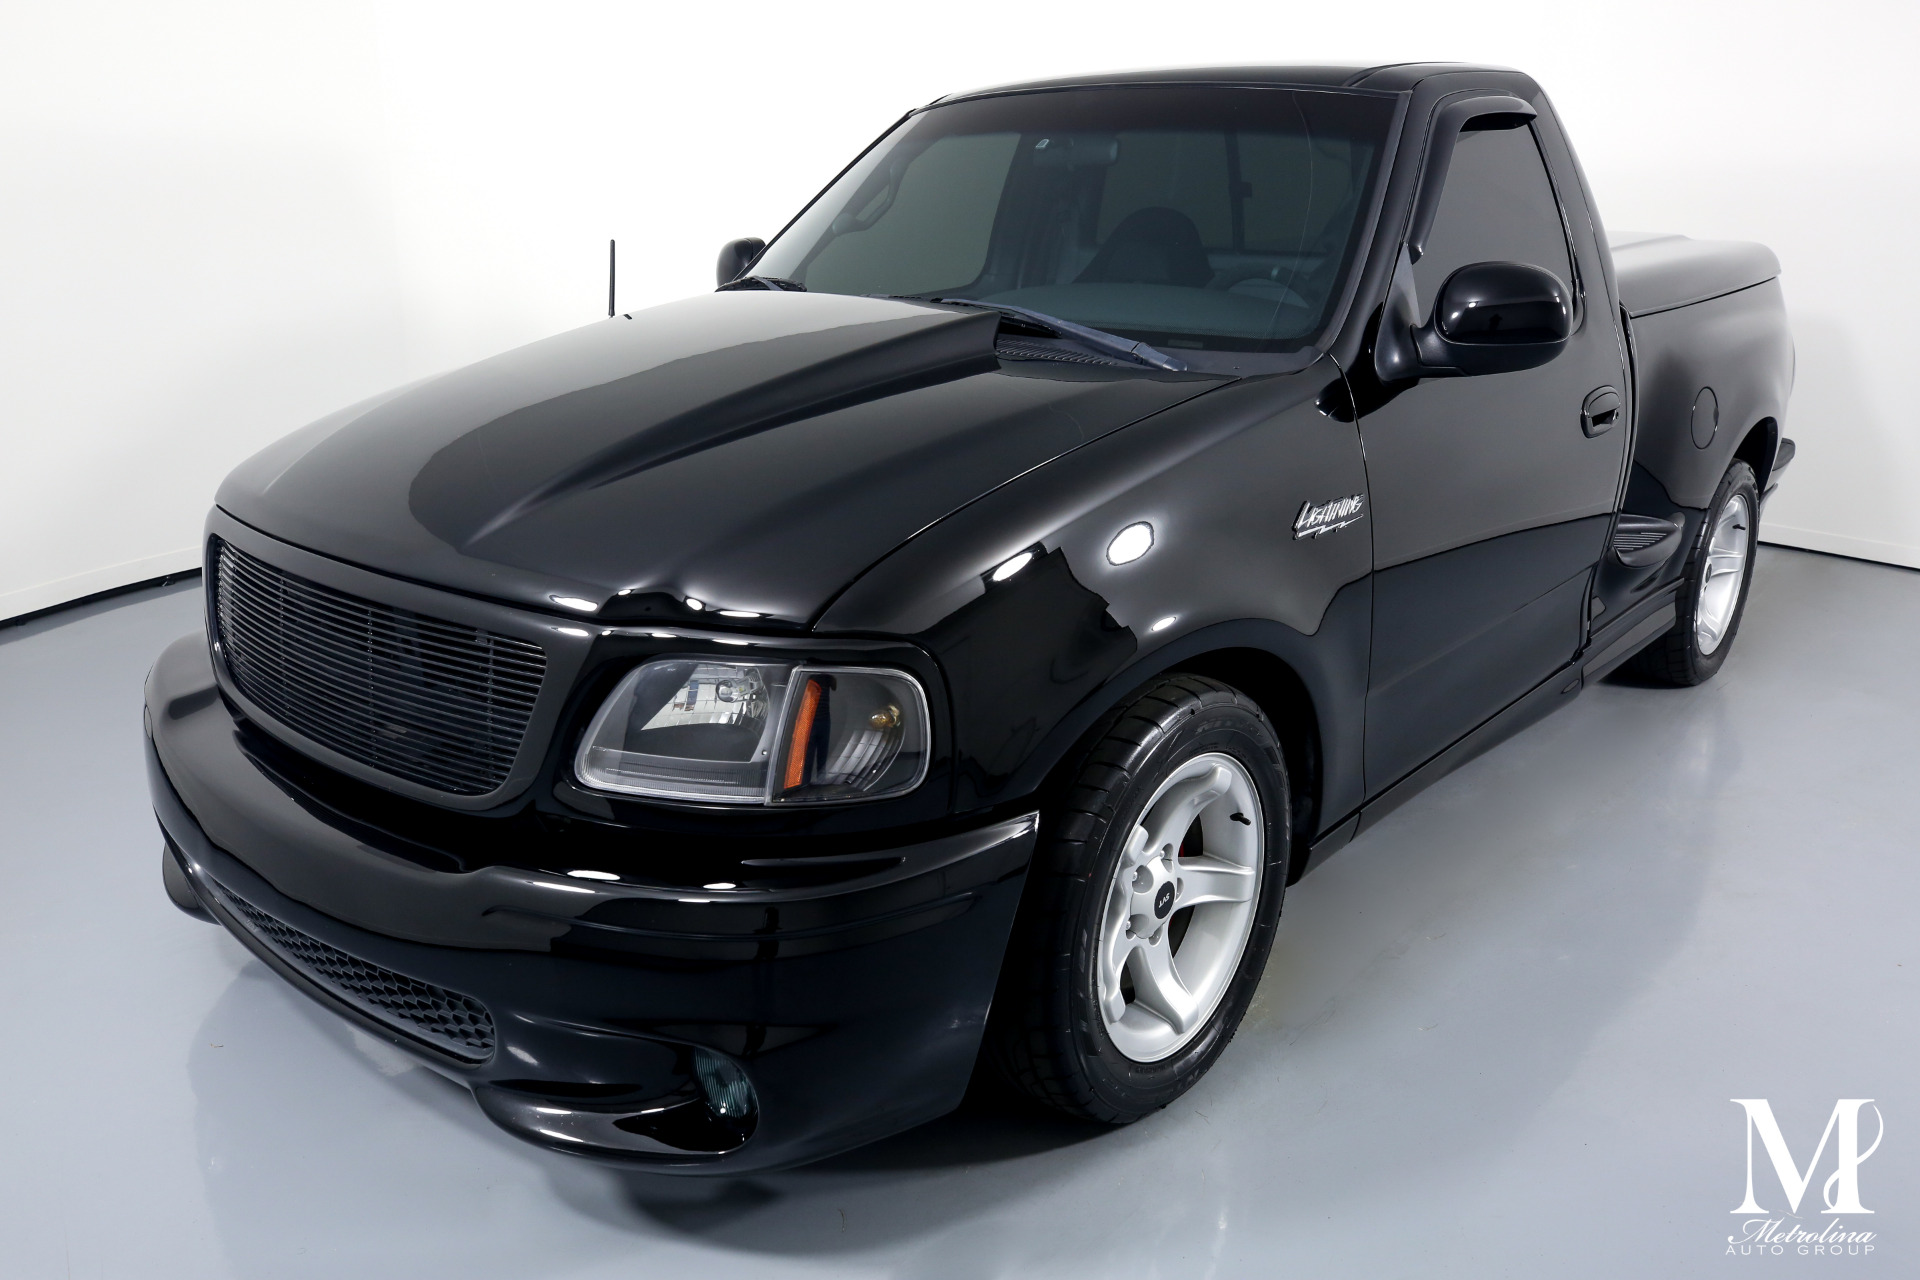 Used 2000 Ford F-150 SVT Lightning for sale $39,996 at Metrolina Auto Group in Charlotte NC 28217 - 4